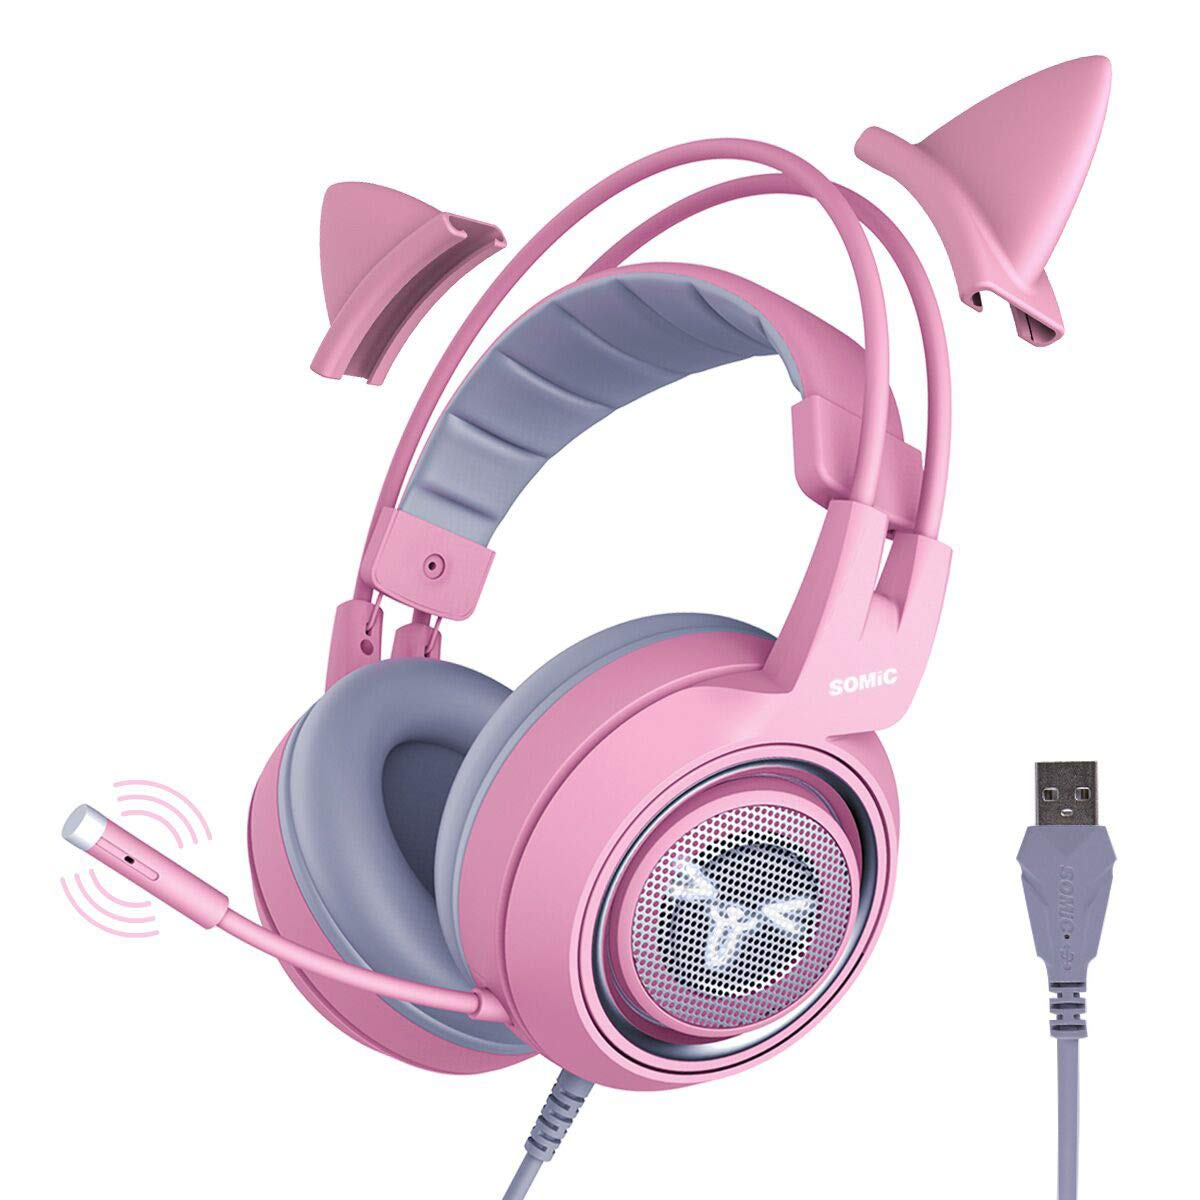 SOMIC G951pink Gaming Headset for PC, PS4, Laptop: 7.1 Virtual Surround Sound Detachable Cat Ear Headphones LED, USB, Lightweight Self-Adjusting Over Ear Headphones for Girlfriend Women SOMIC-G951PINK